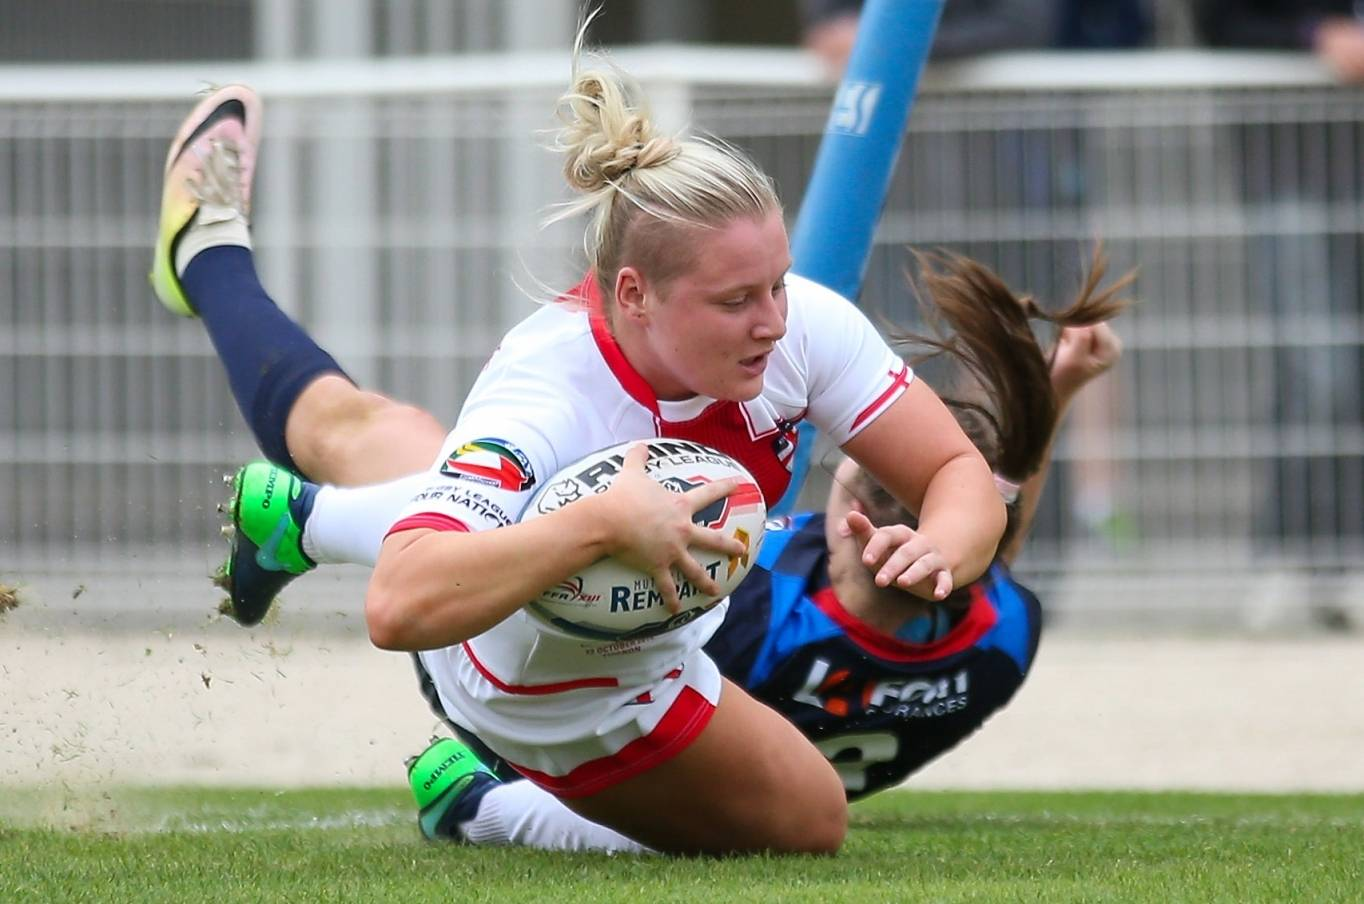 Charlotte Booth becomes first female TASS Rugby League player